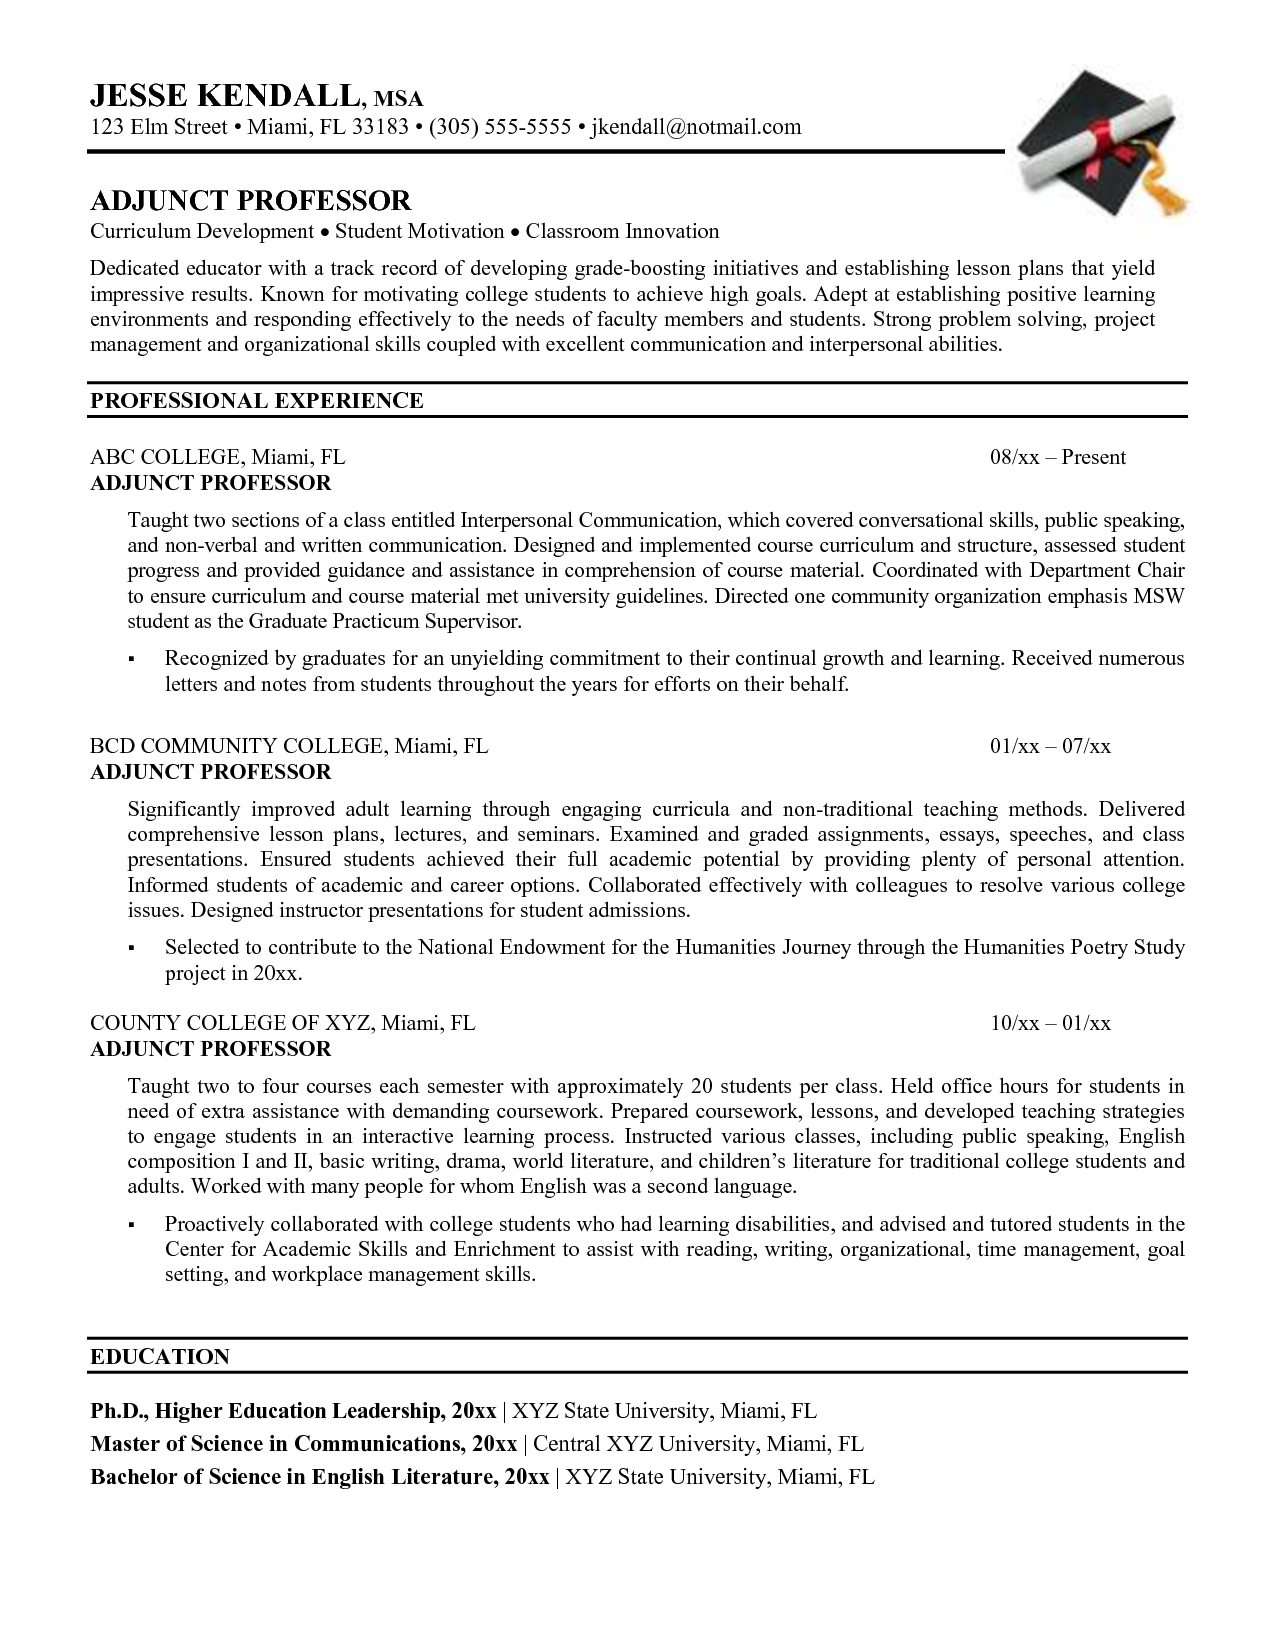 sample resume for faculty position engineering Adjunct